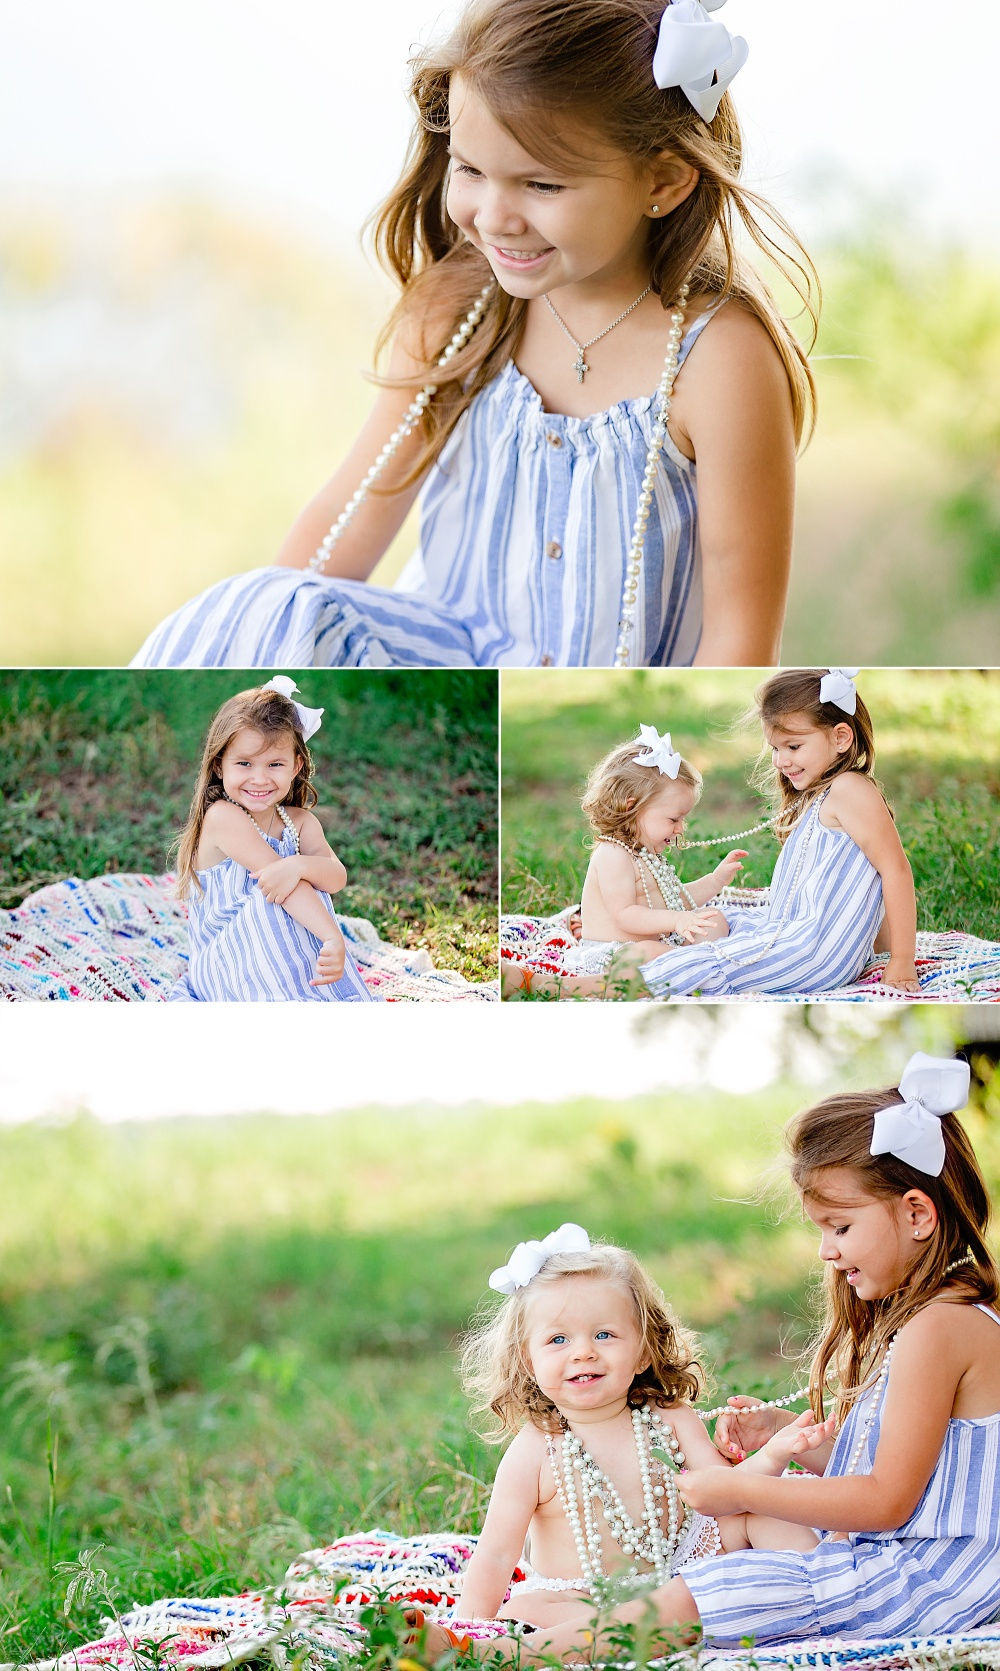 Family-photographer-Cake-Smash-one-year-birthday-pink-theme-carly-barton-photography_0005.jpg